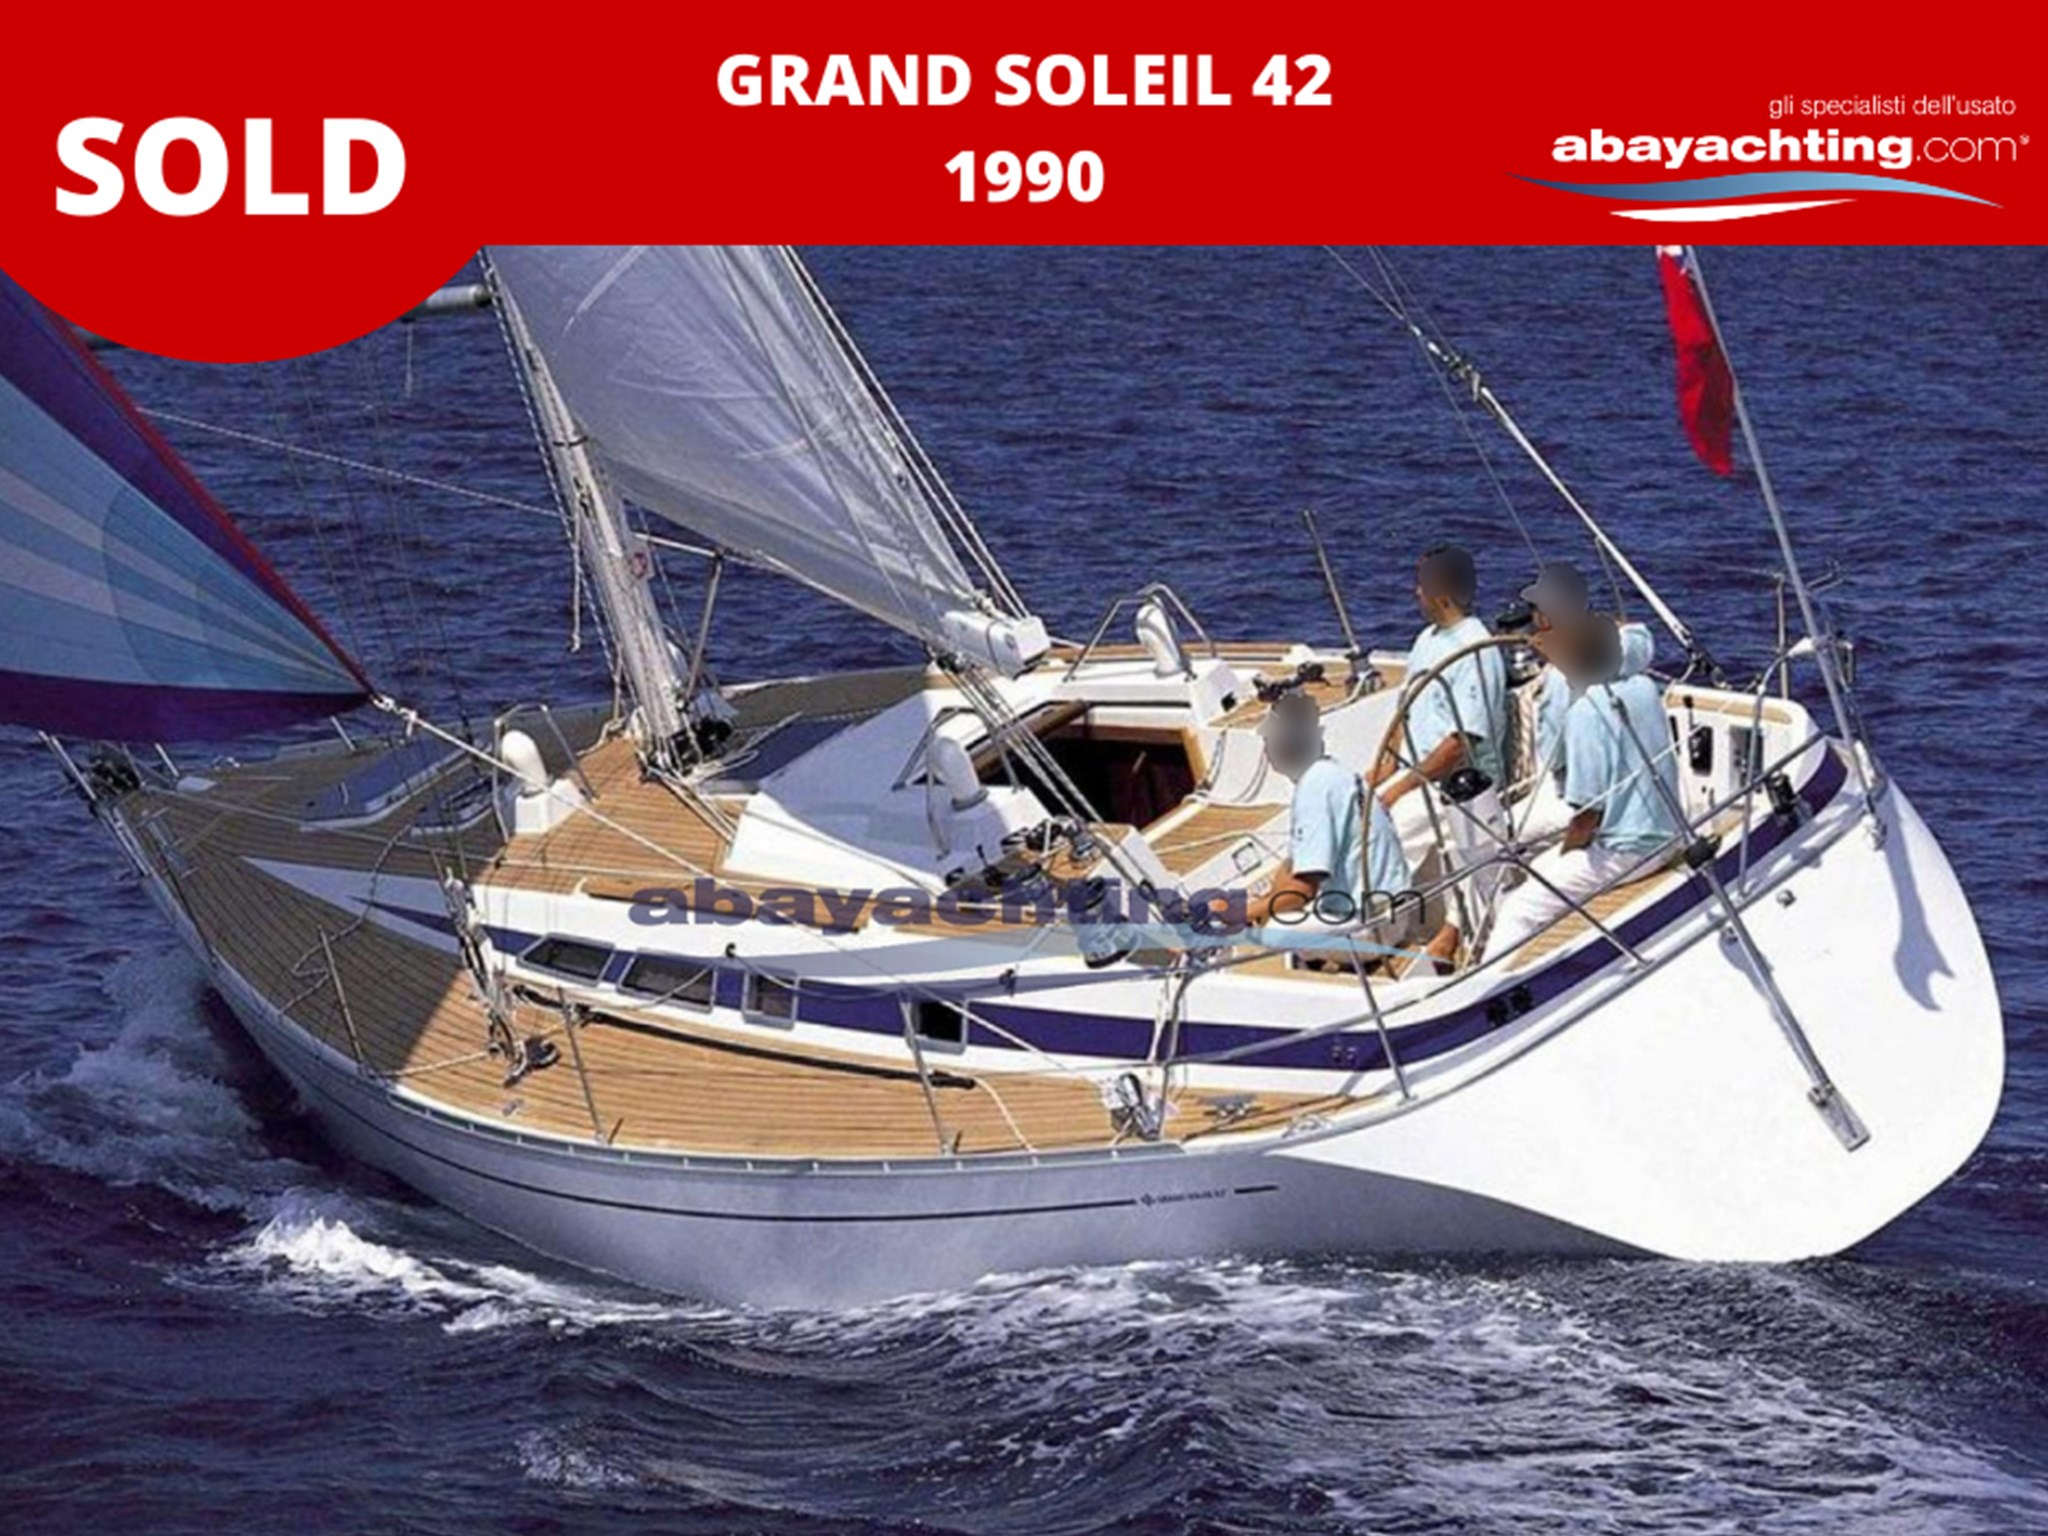 Grand Soleil 42 sold